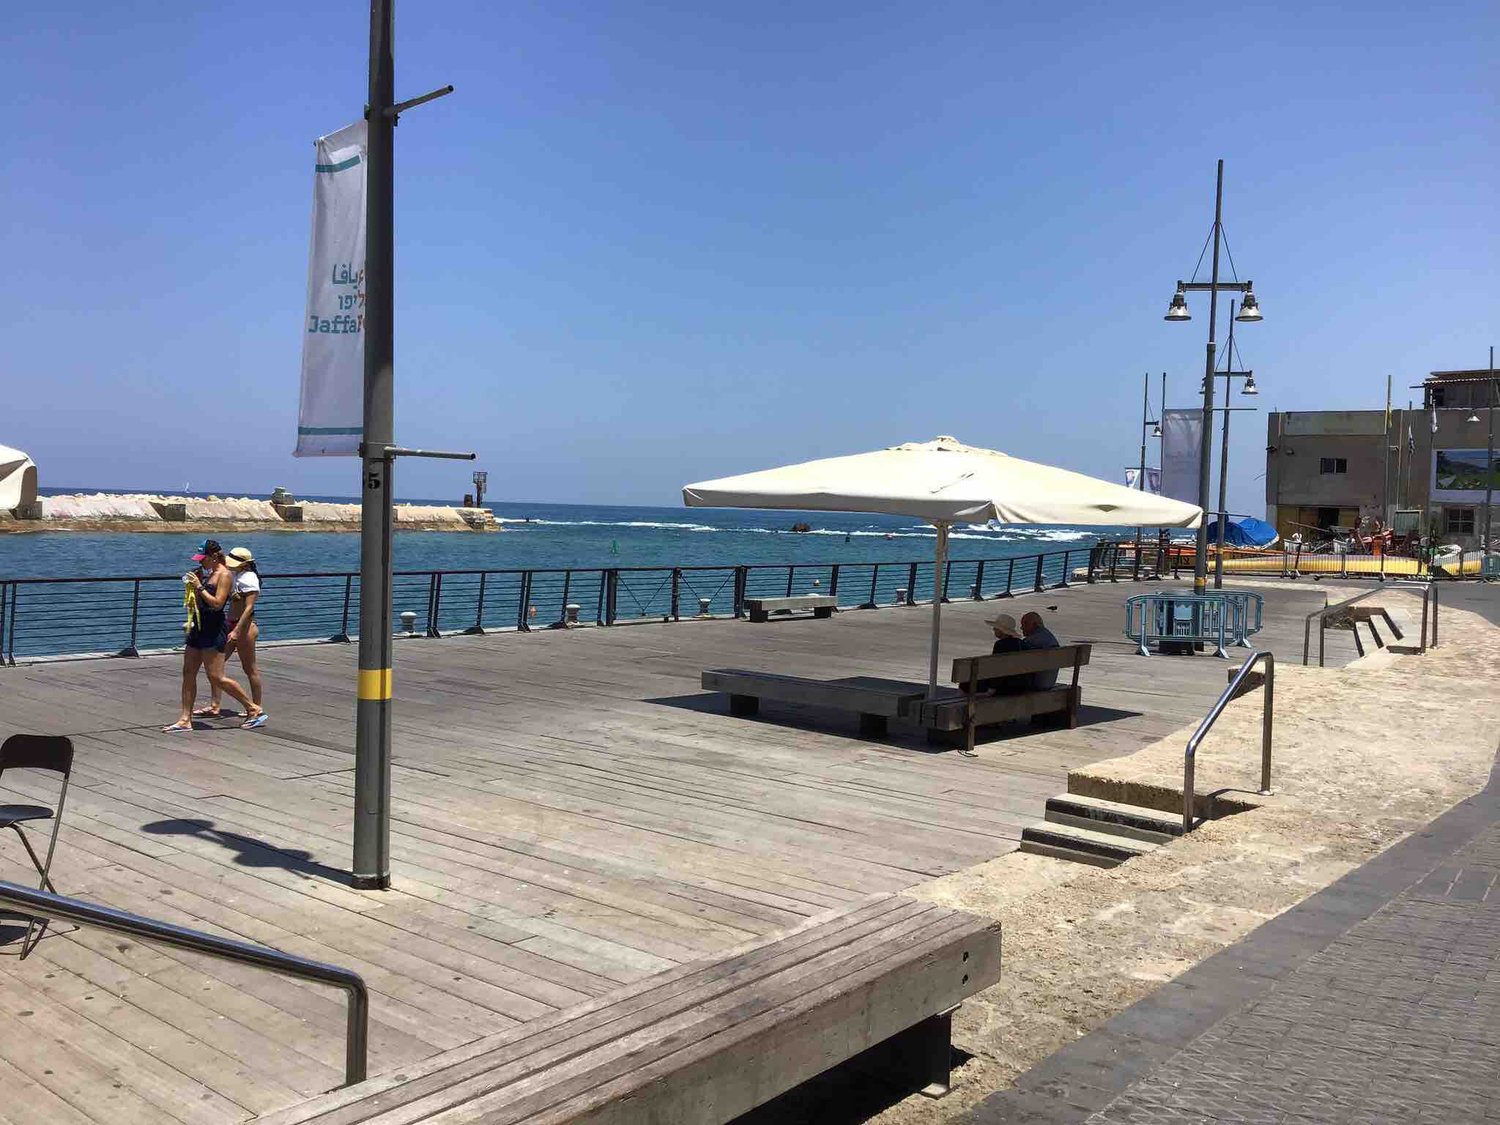 The boardwalk in Jaffa.